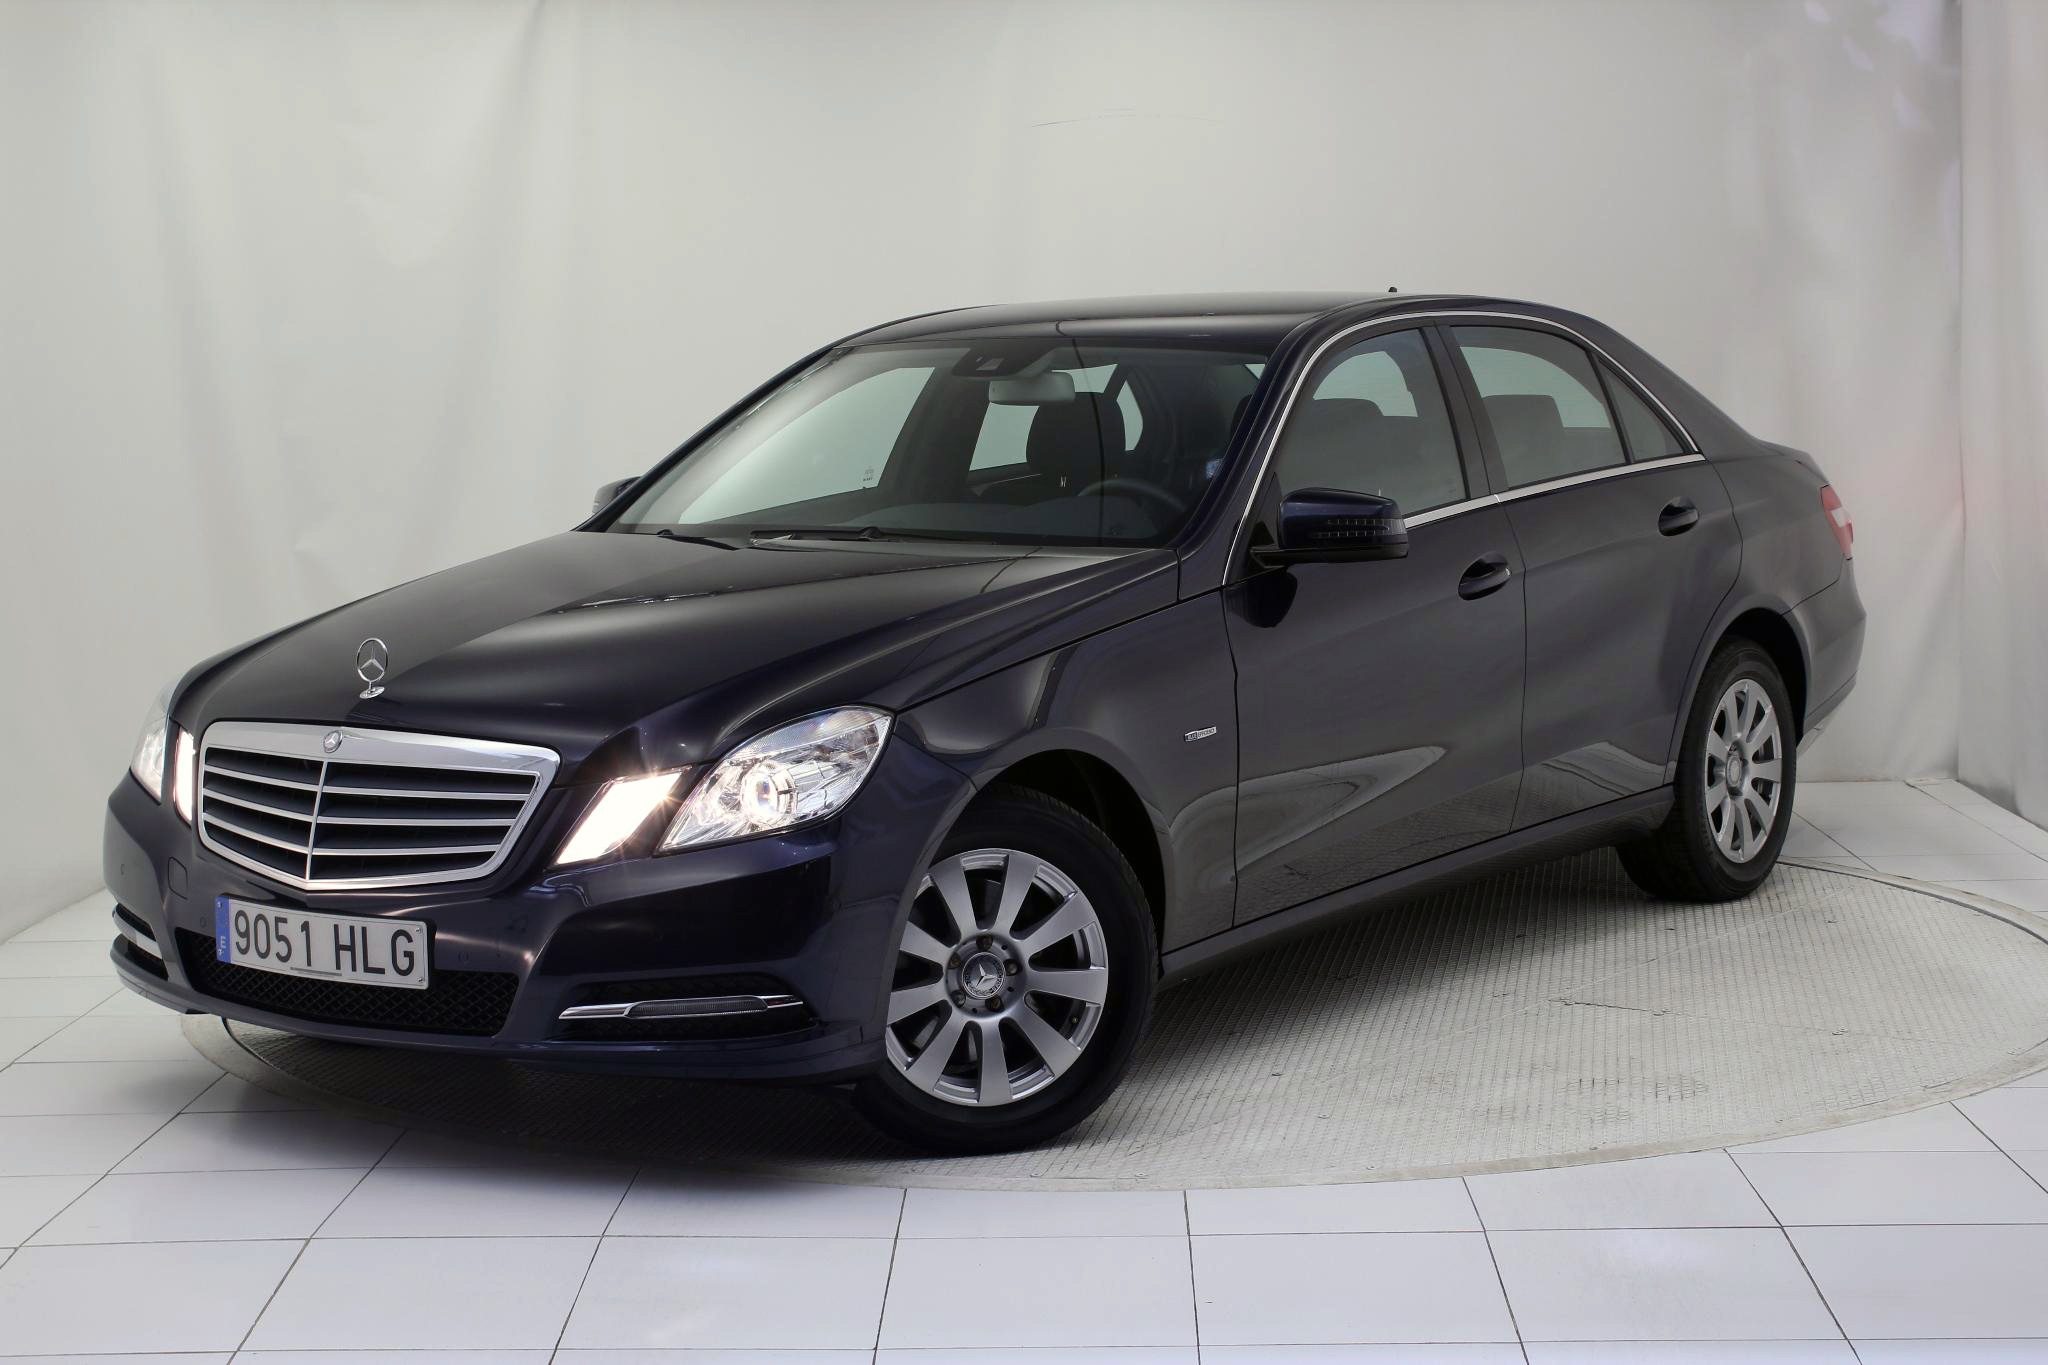 Mercedes-Benz Clase E CLASE E 250 CDI BLUE EFFICIENCY AUTO imagen 1